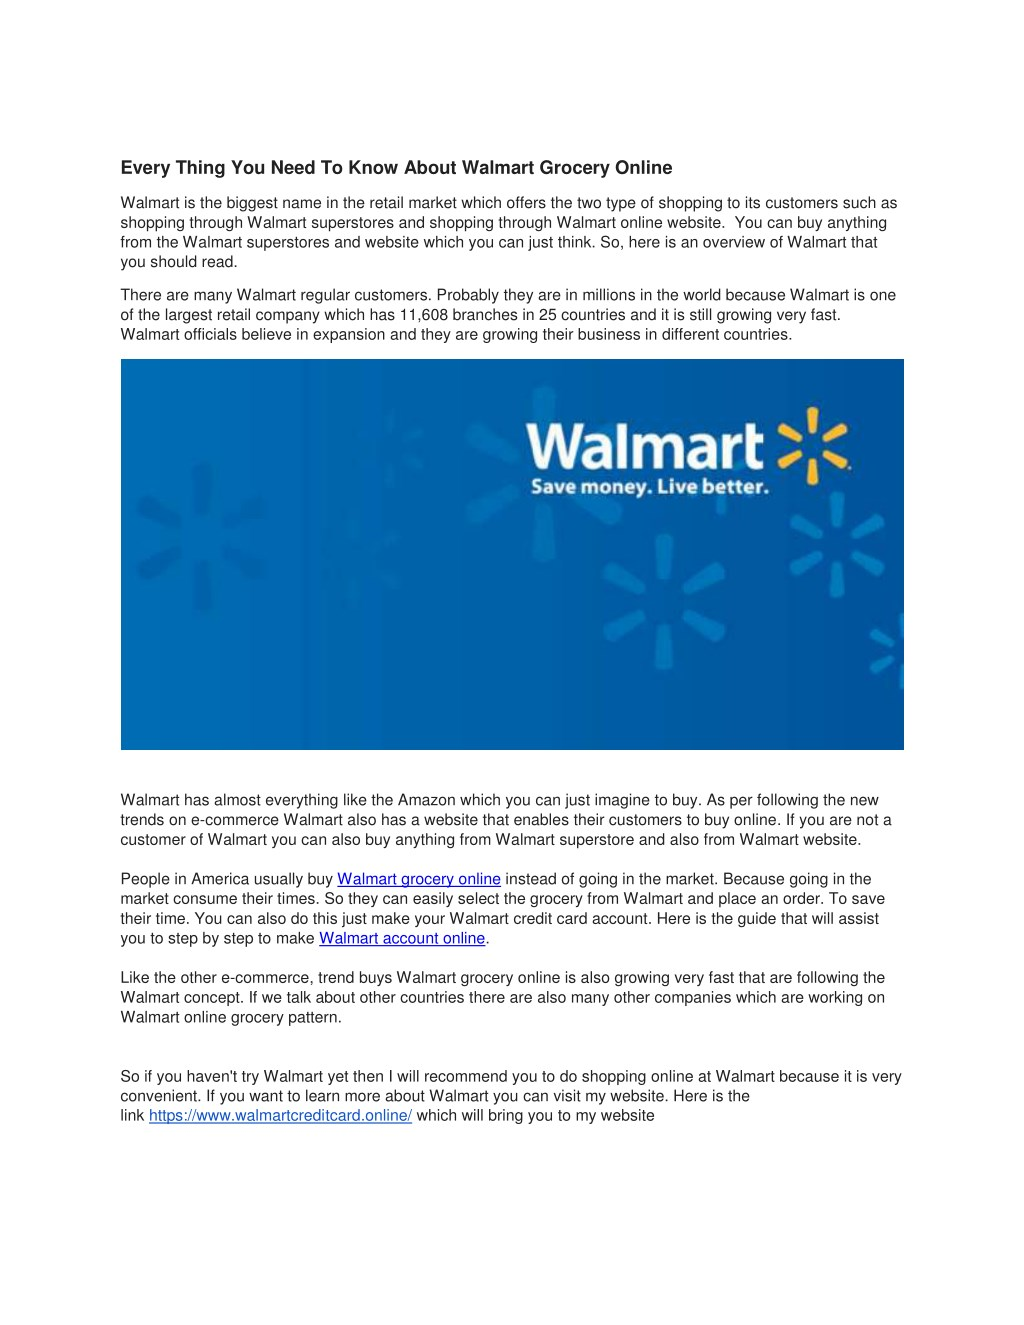 PPT - Every Thing You Need To Know About Walmart Grocery